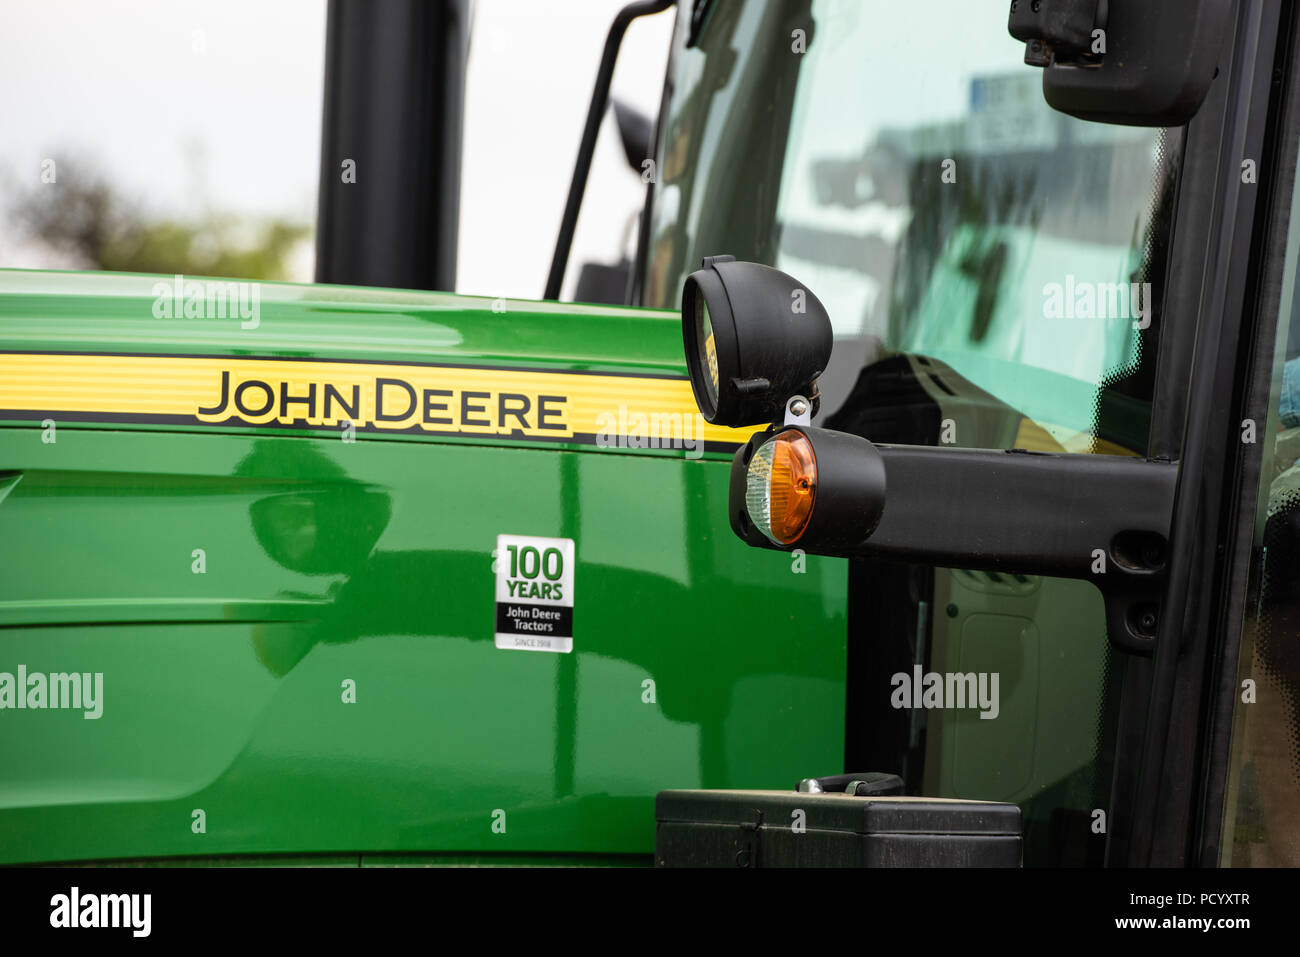 Closeup of an agricultural tractor by John Deere - Stock Image